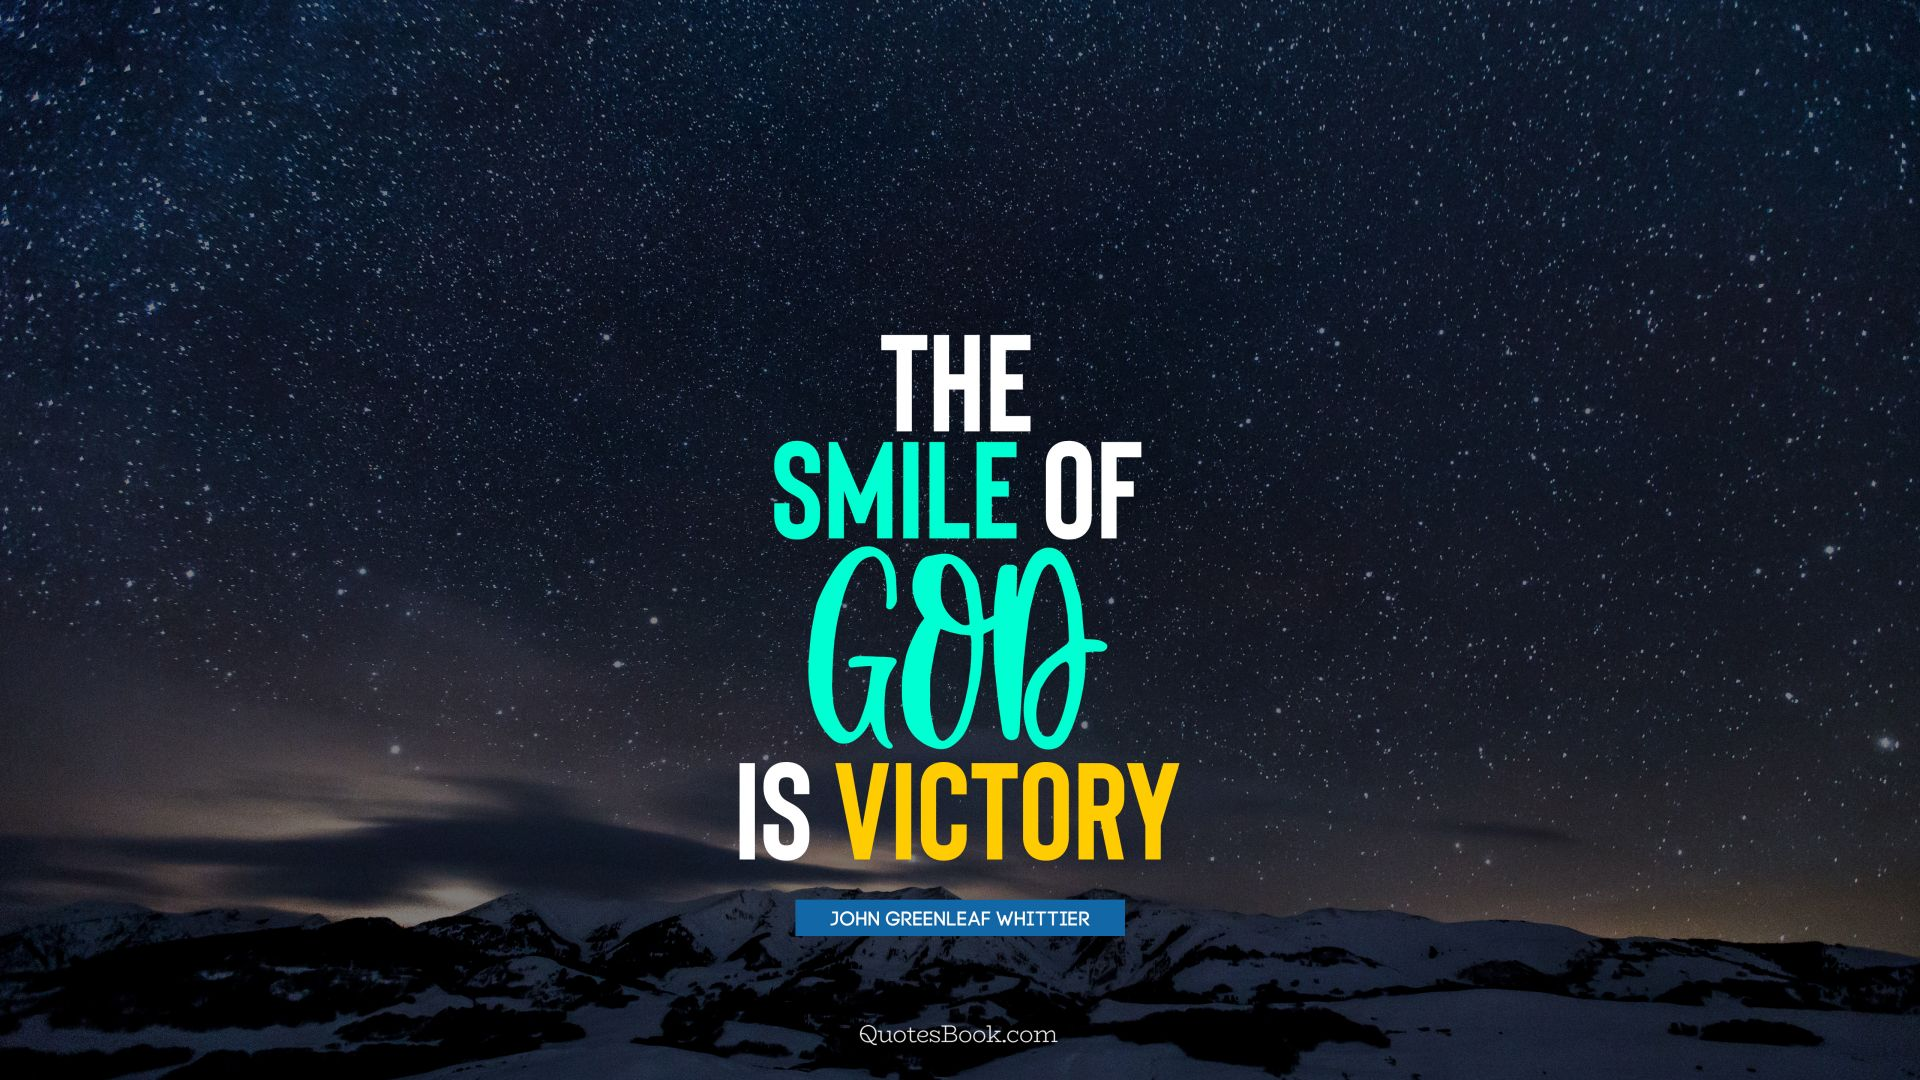 The smile of God is victory. - Quote by John Greenleaf Whittier